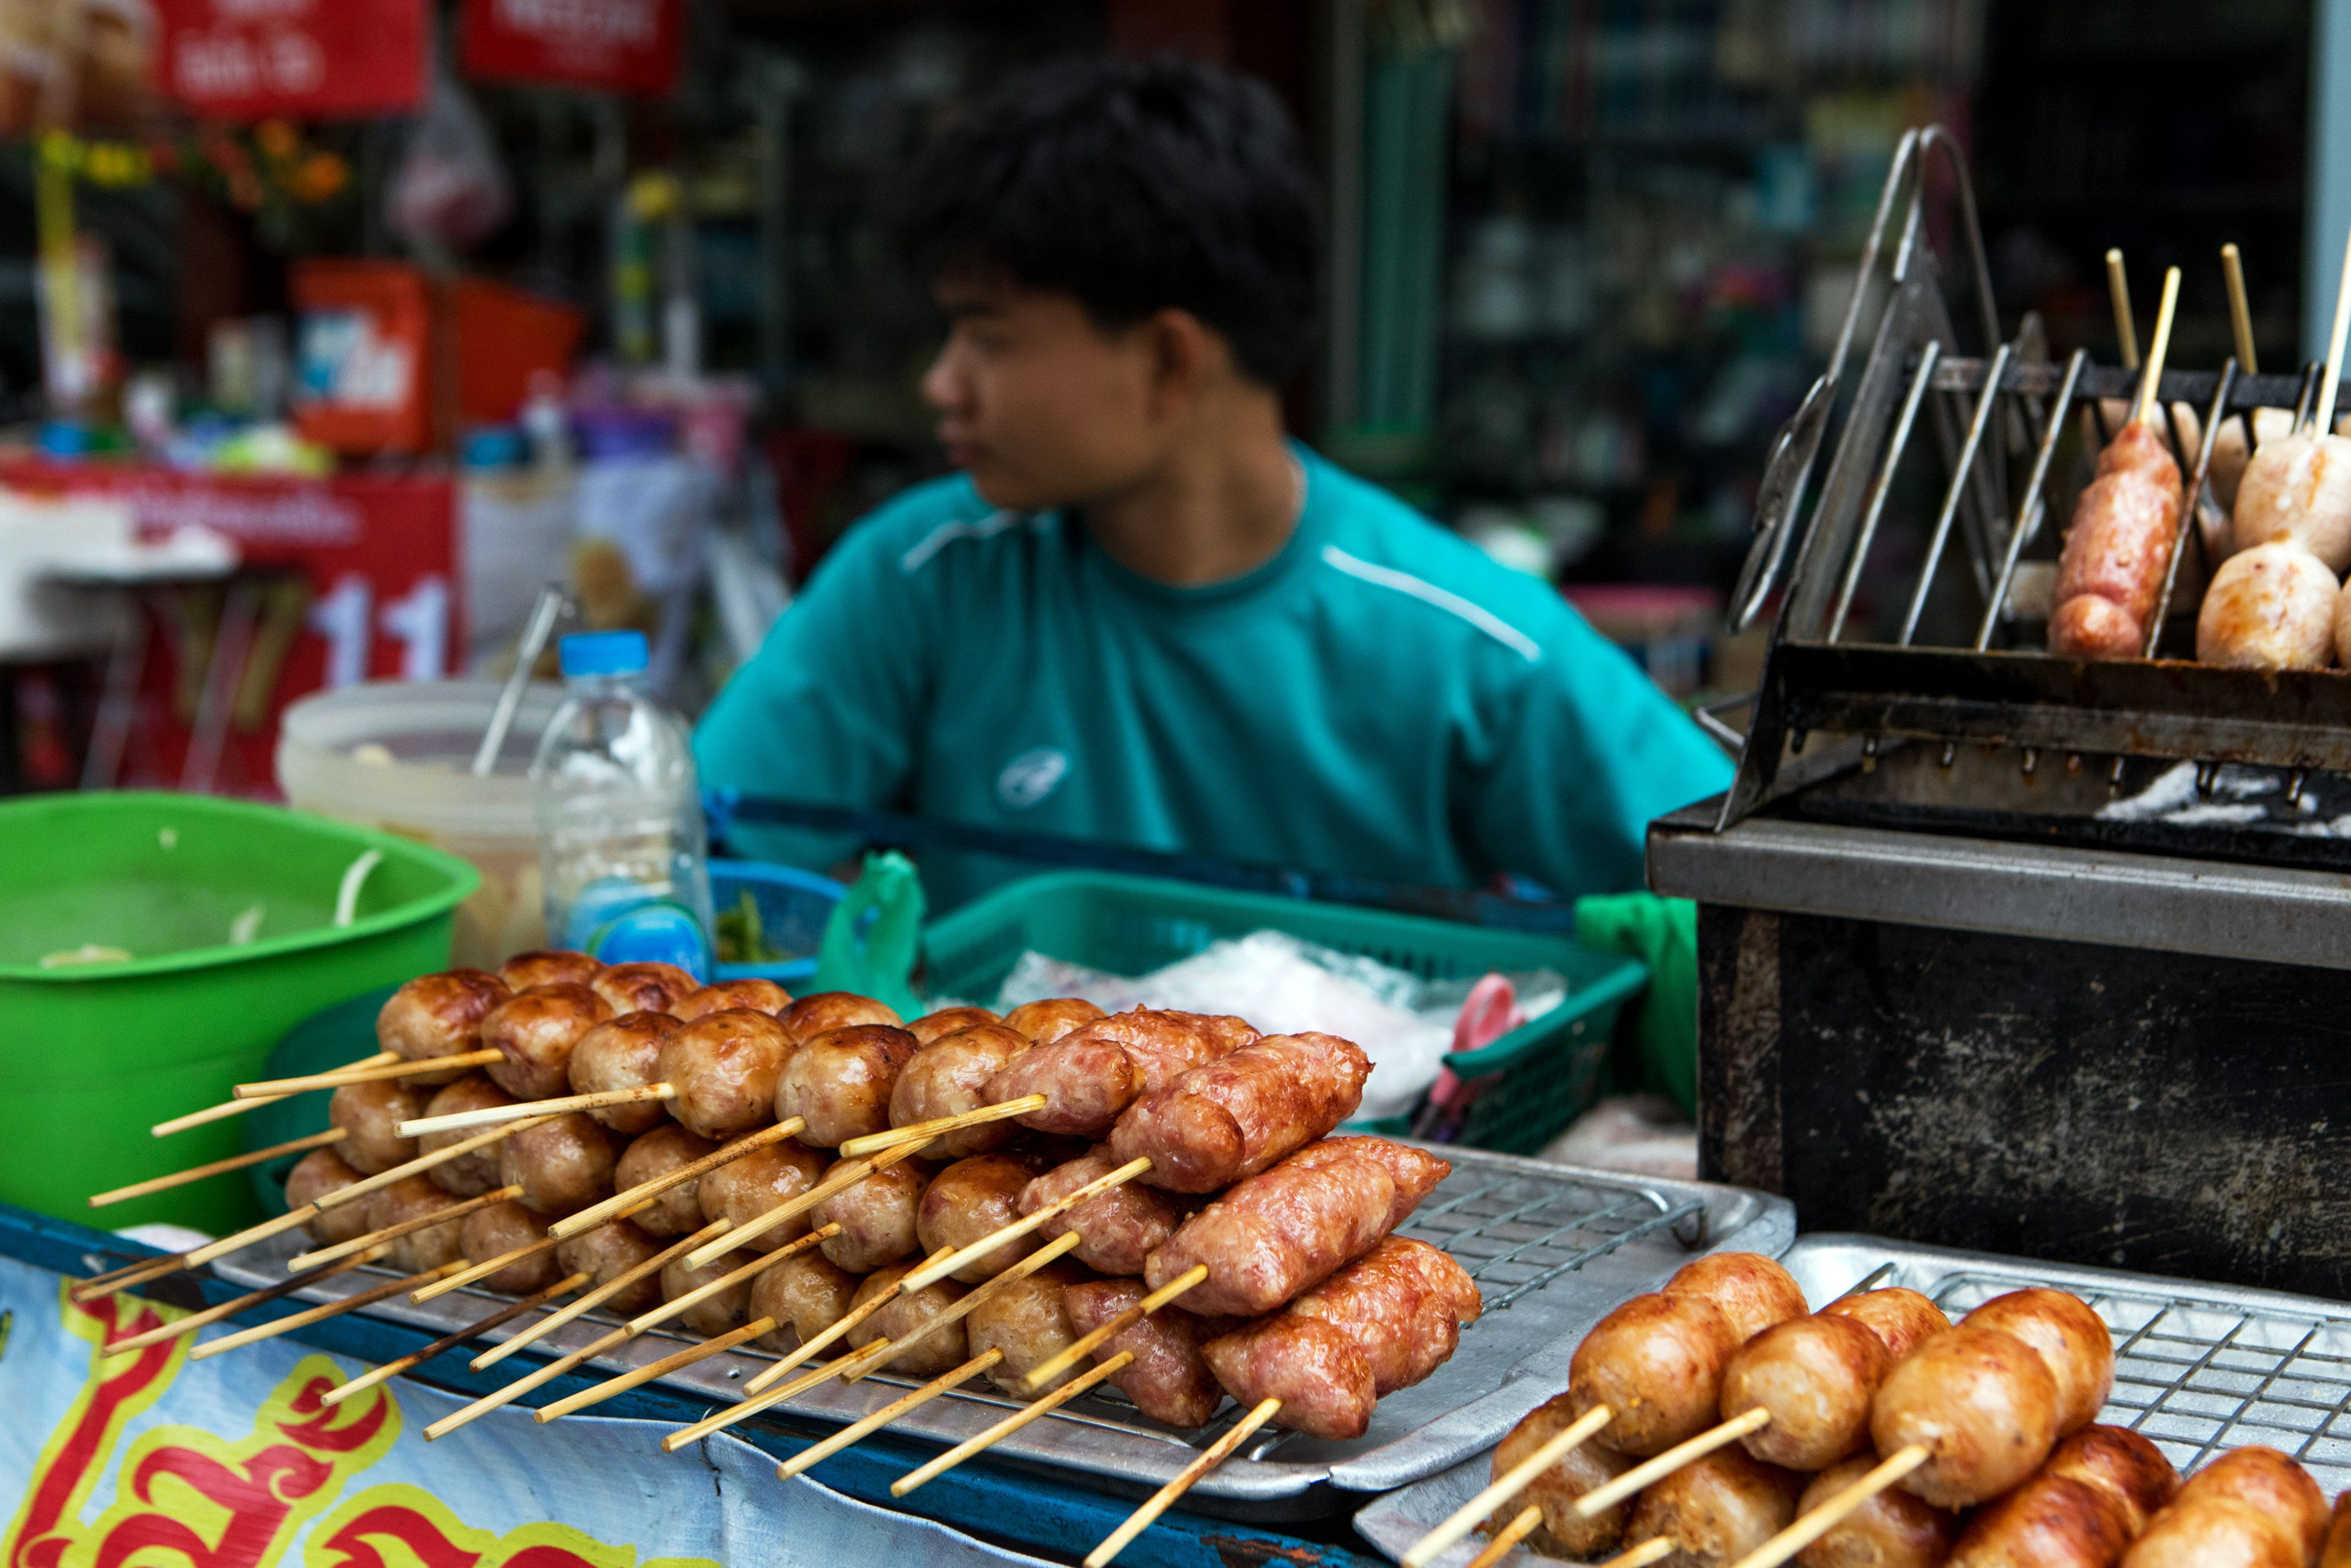 Grilled sausages and other meat snacks sit on display at a food stall in the Phaya Thai District of Bangkok, Thailand, on Wednesday, April 5, 2017. The central bank predicts growth will accelerate to 3.4 percent in 2017, which would be the highest in five years, that's still below Bank of Thailand Governor Veerathai Santiprabhob's estimate of potential growth of 4 percent to 4.5 percent. Photographer: Amanda Mustard/Bloomberg via Getty Images